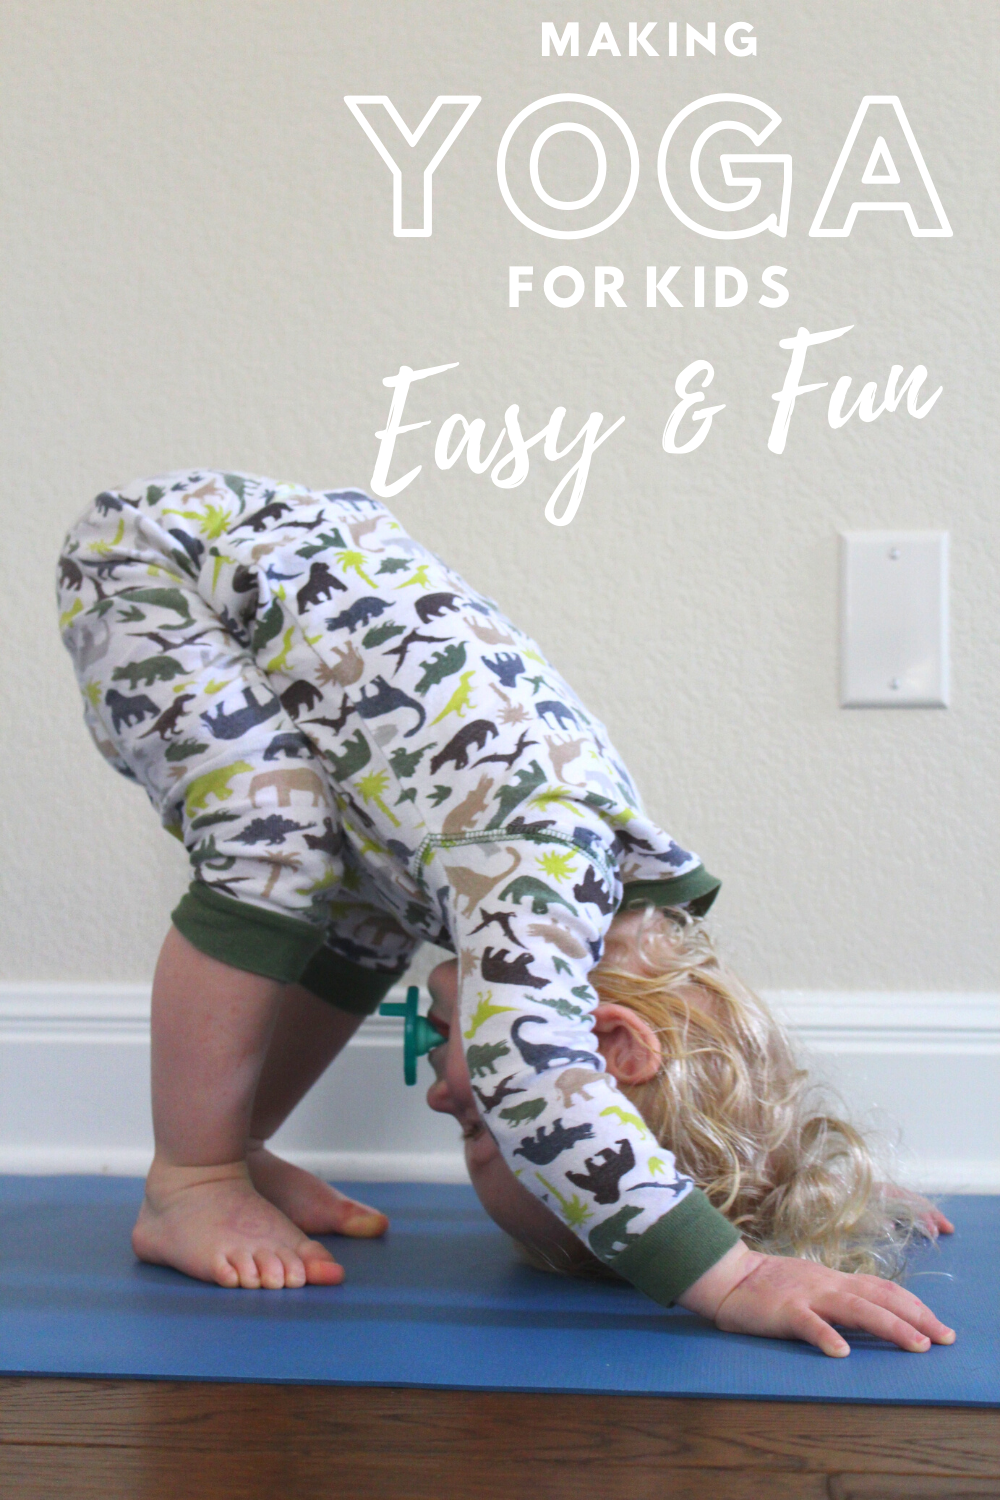 Making Yoga for kids easy and fun // Life Anchored